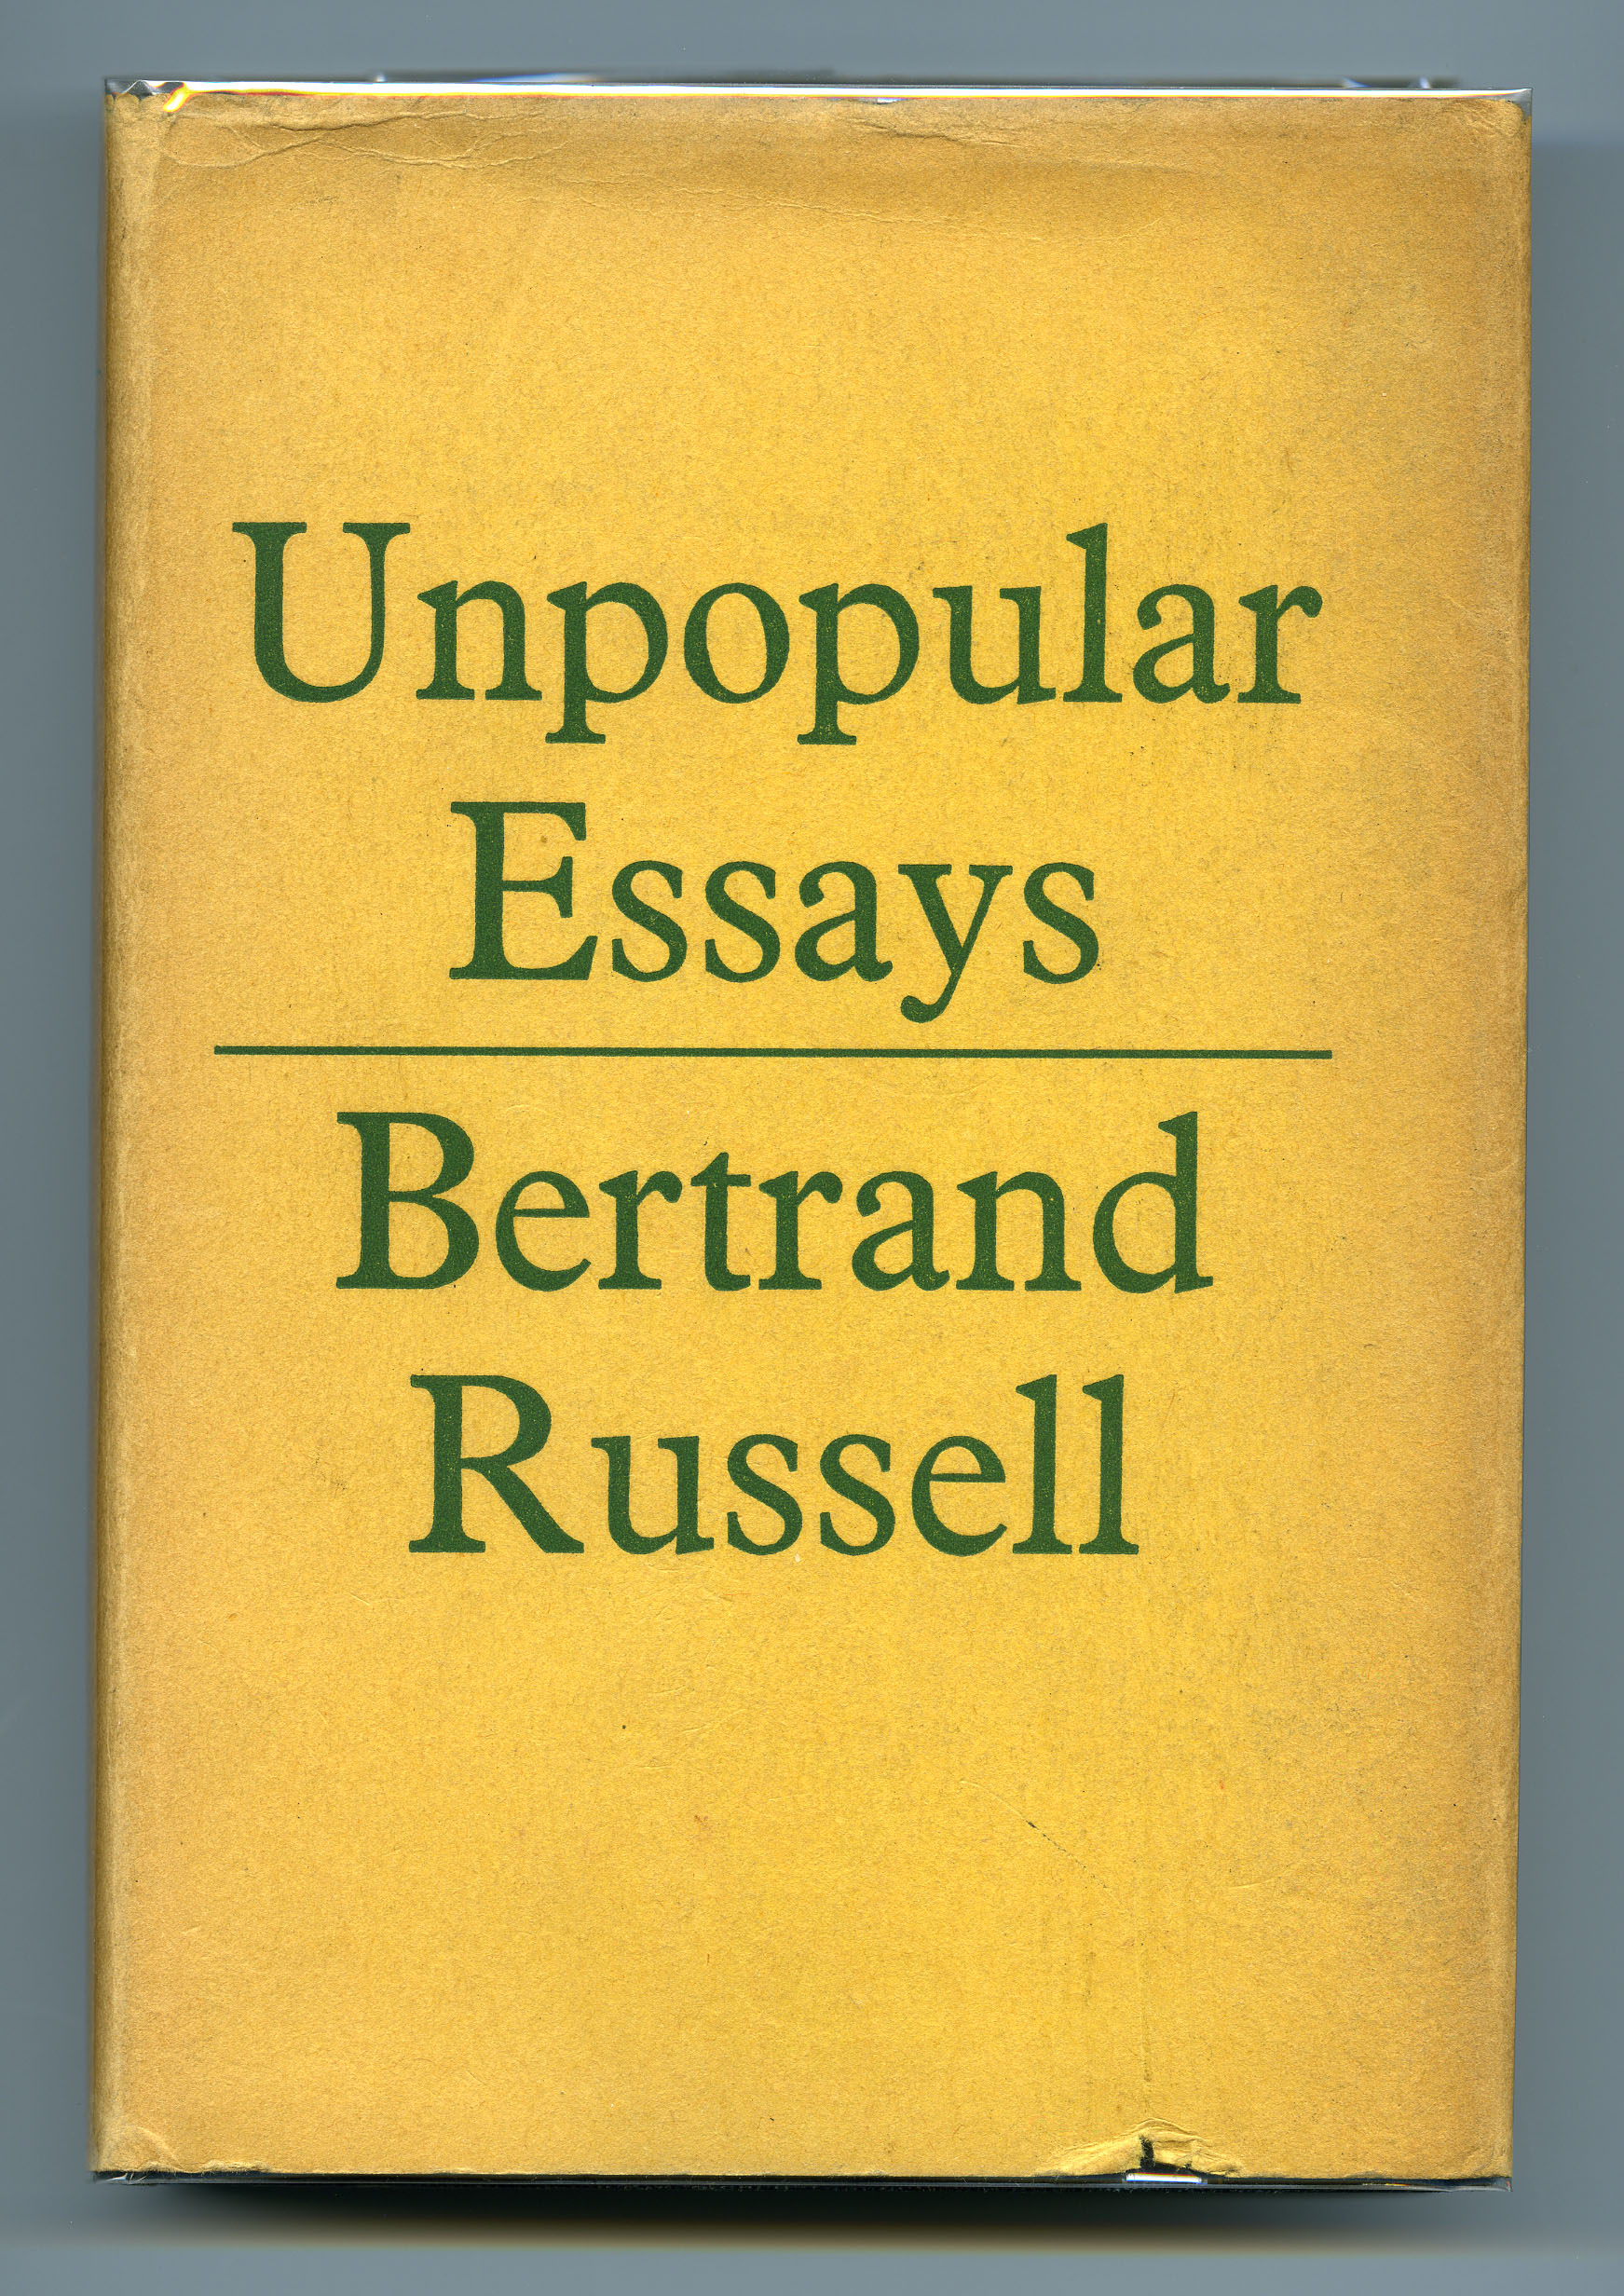 bertrand russell unpopular essays Unpopular essays isbn 13: 9780043040096  bertrand russell (1872–1970) was one of the most formidable thinkers of the modern era a philosopher, mathematician, educational innovator, champion of intellectual, social and sexual freedom, and a campaigner for peace and human rights, he was also a prolific writer of popular and influential.